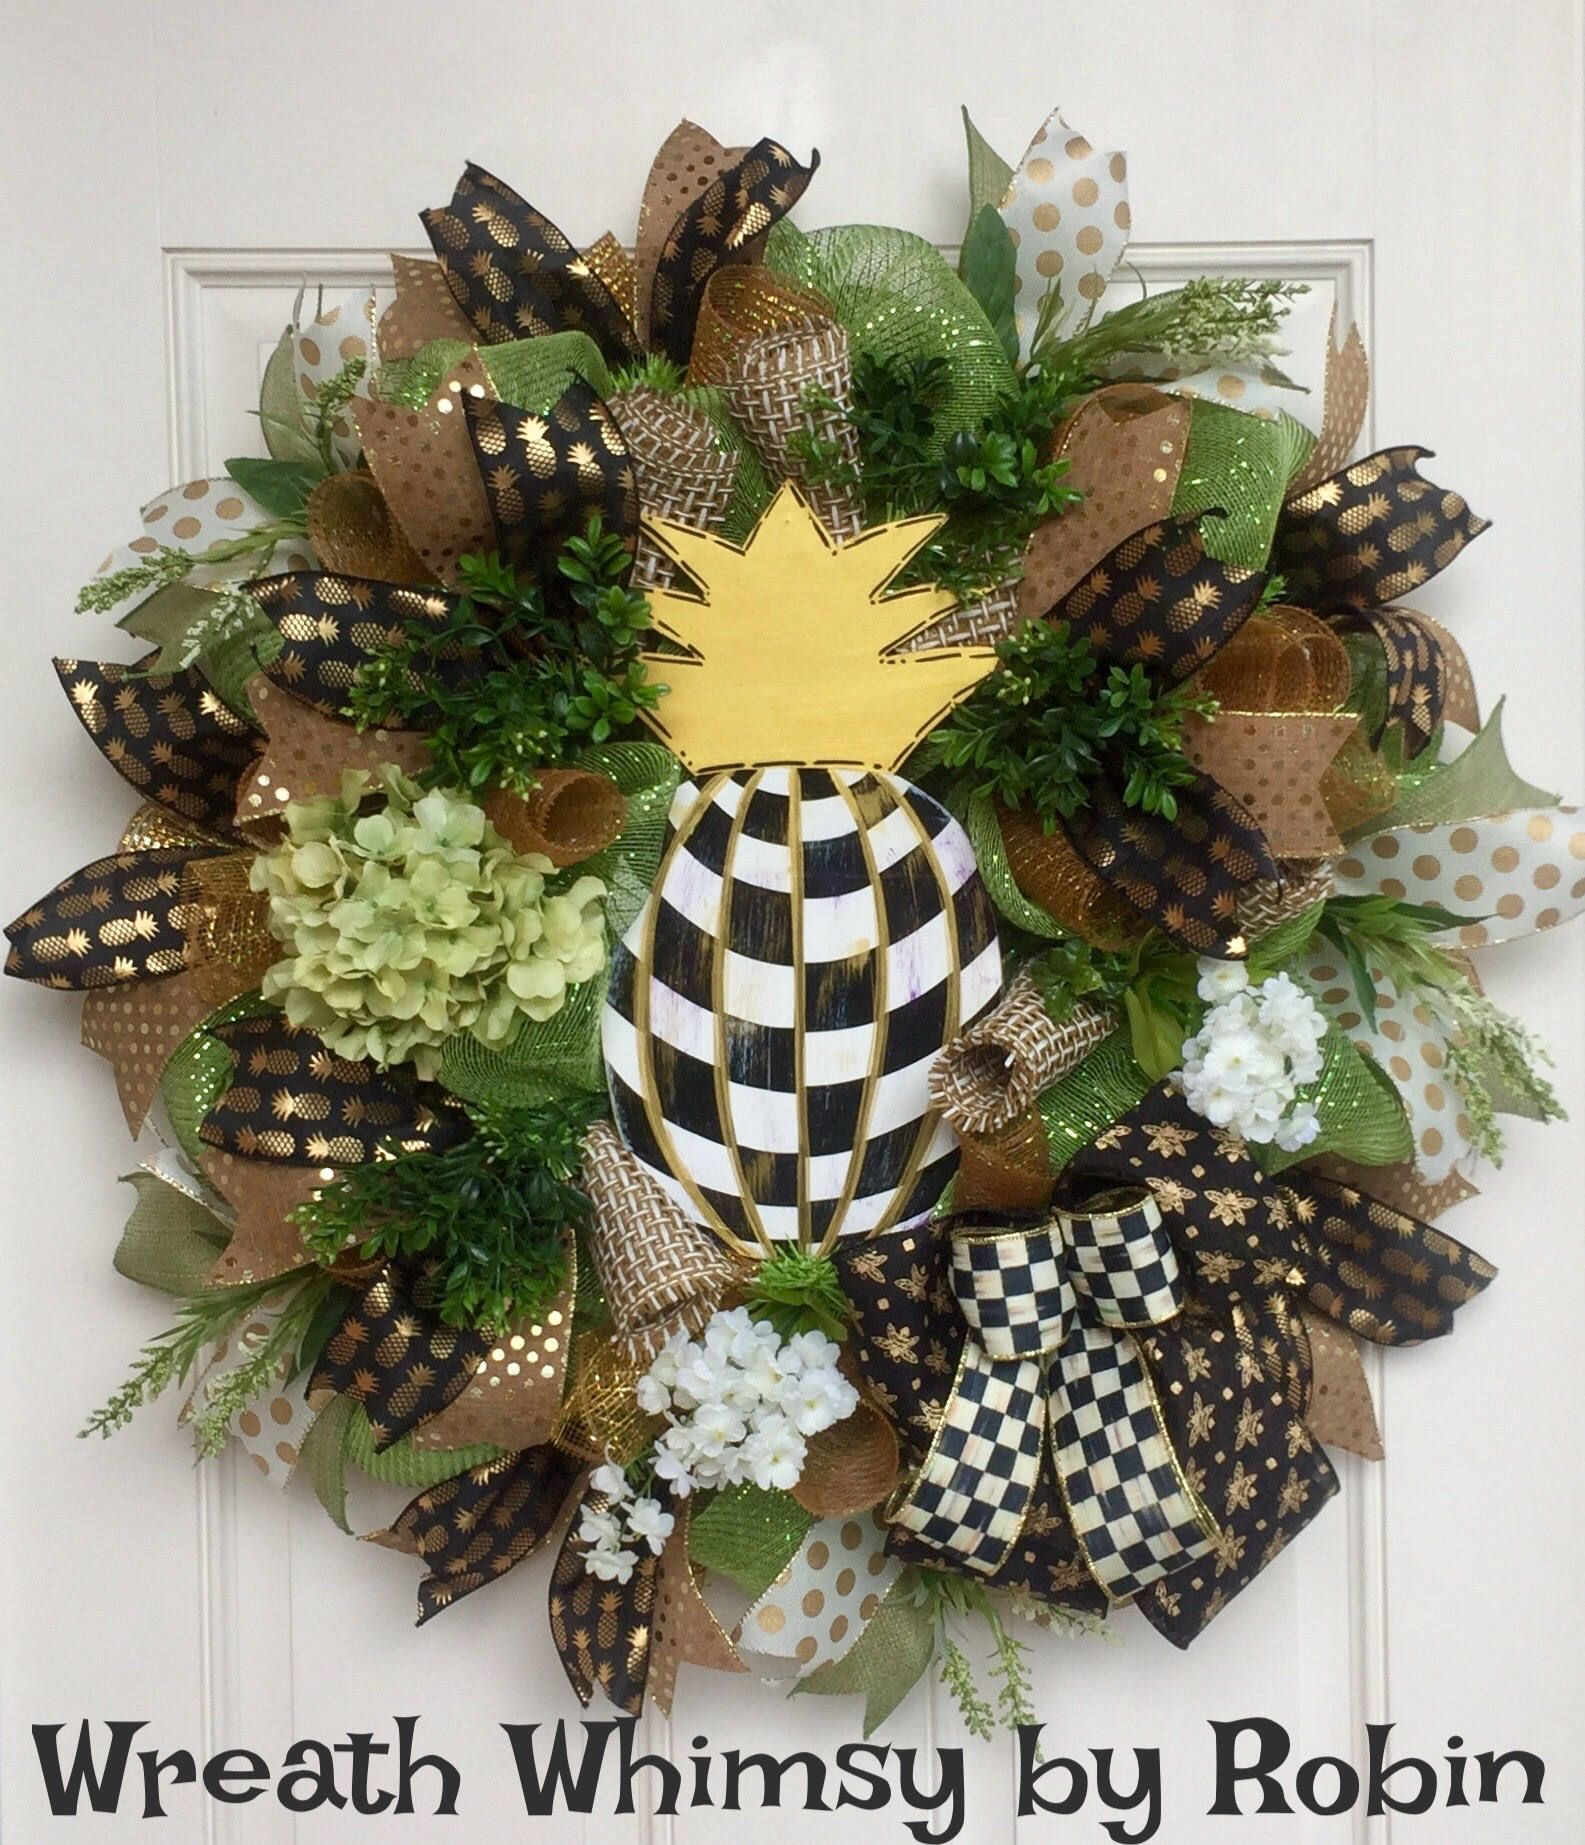 Year Round Deco Mesh Wreath With Hand Painted Checked Pineapple, Front Door  Wreath, All